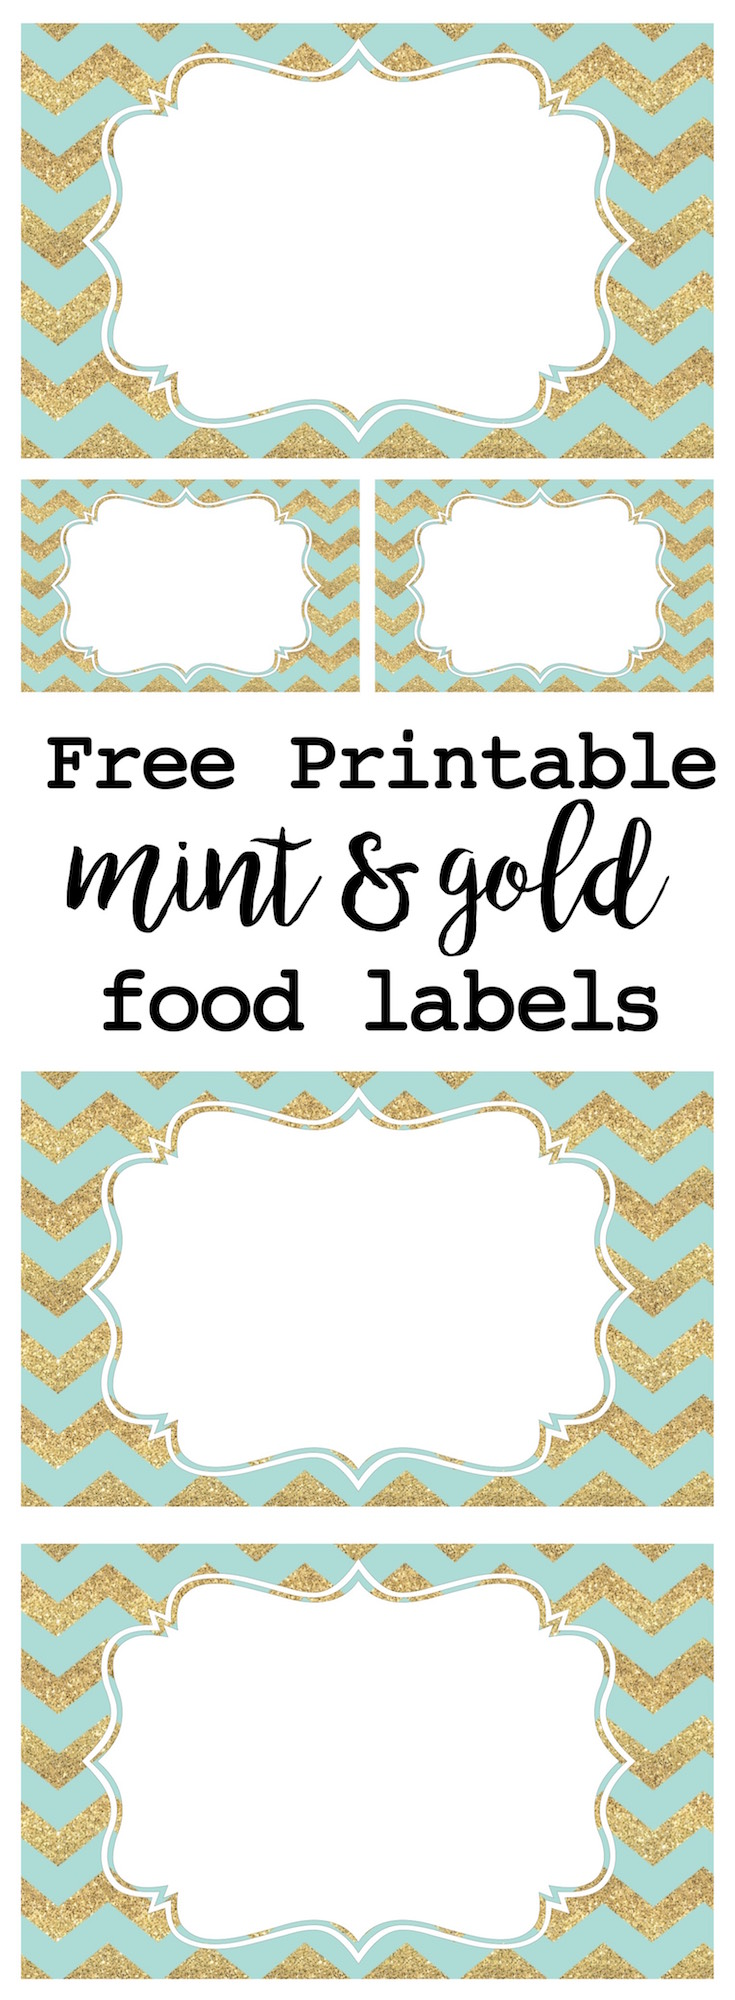 photo relating to Free Printable Food Labels for Party named Mint and Gold Get together Food stuff Labels - Paper Path Style